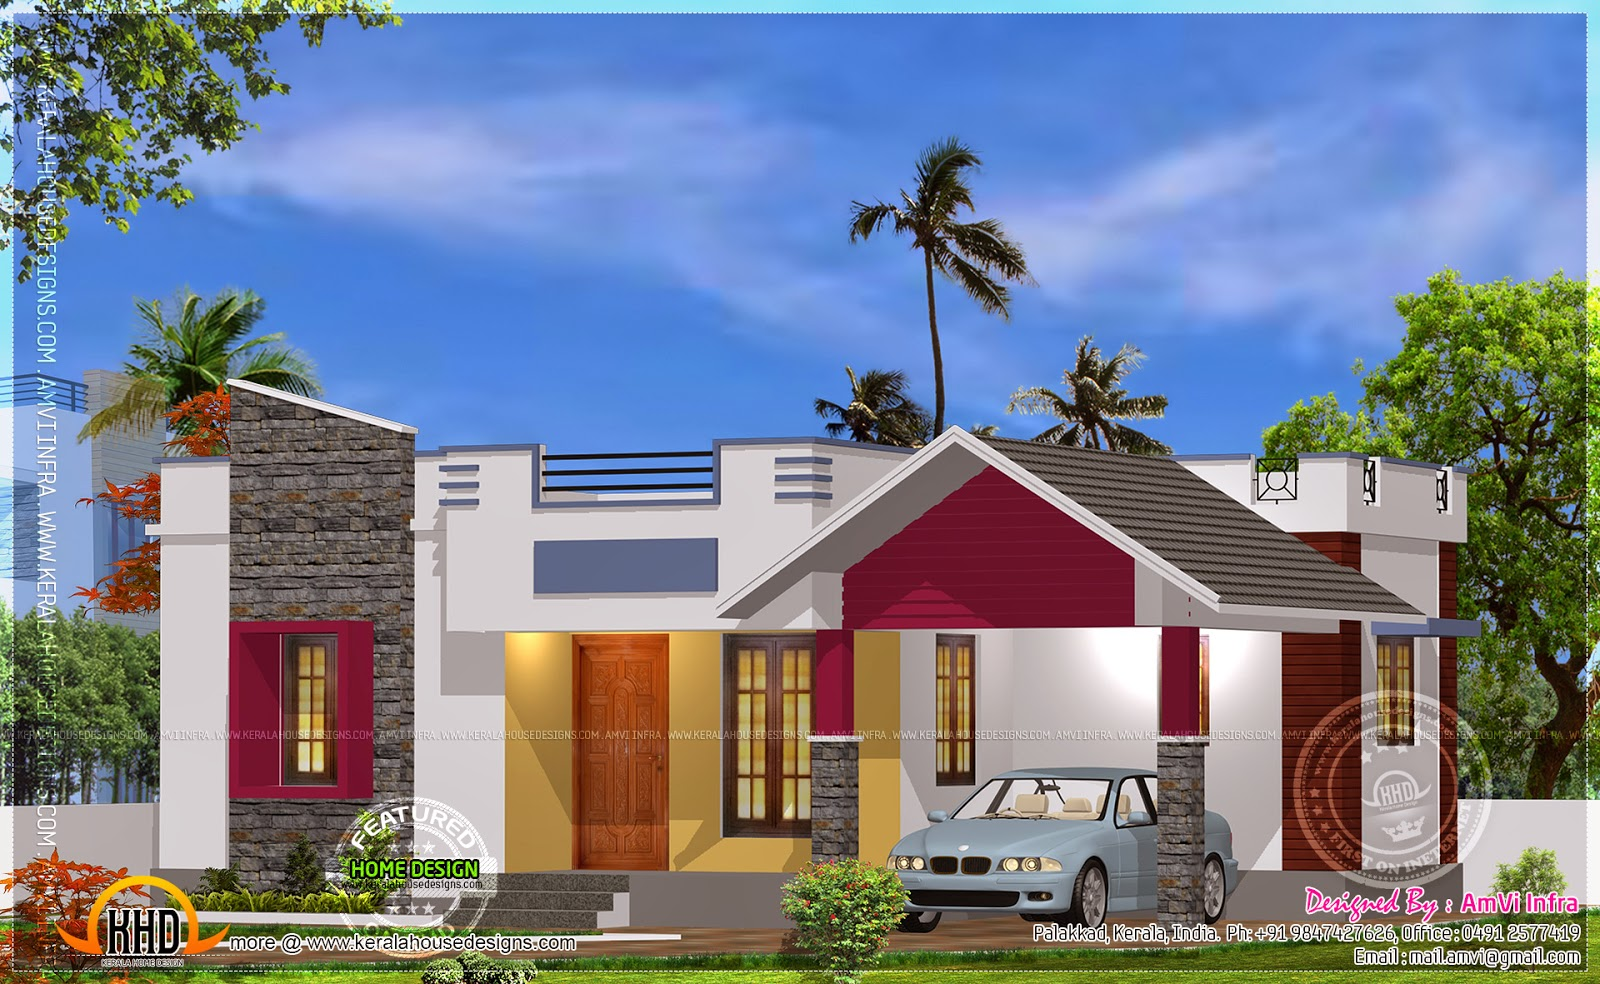 Stylish 900 sq ft new 2 bedroom kerala home design with for Kerala home design 1000 sq feet